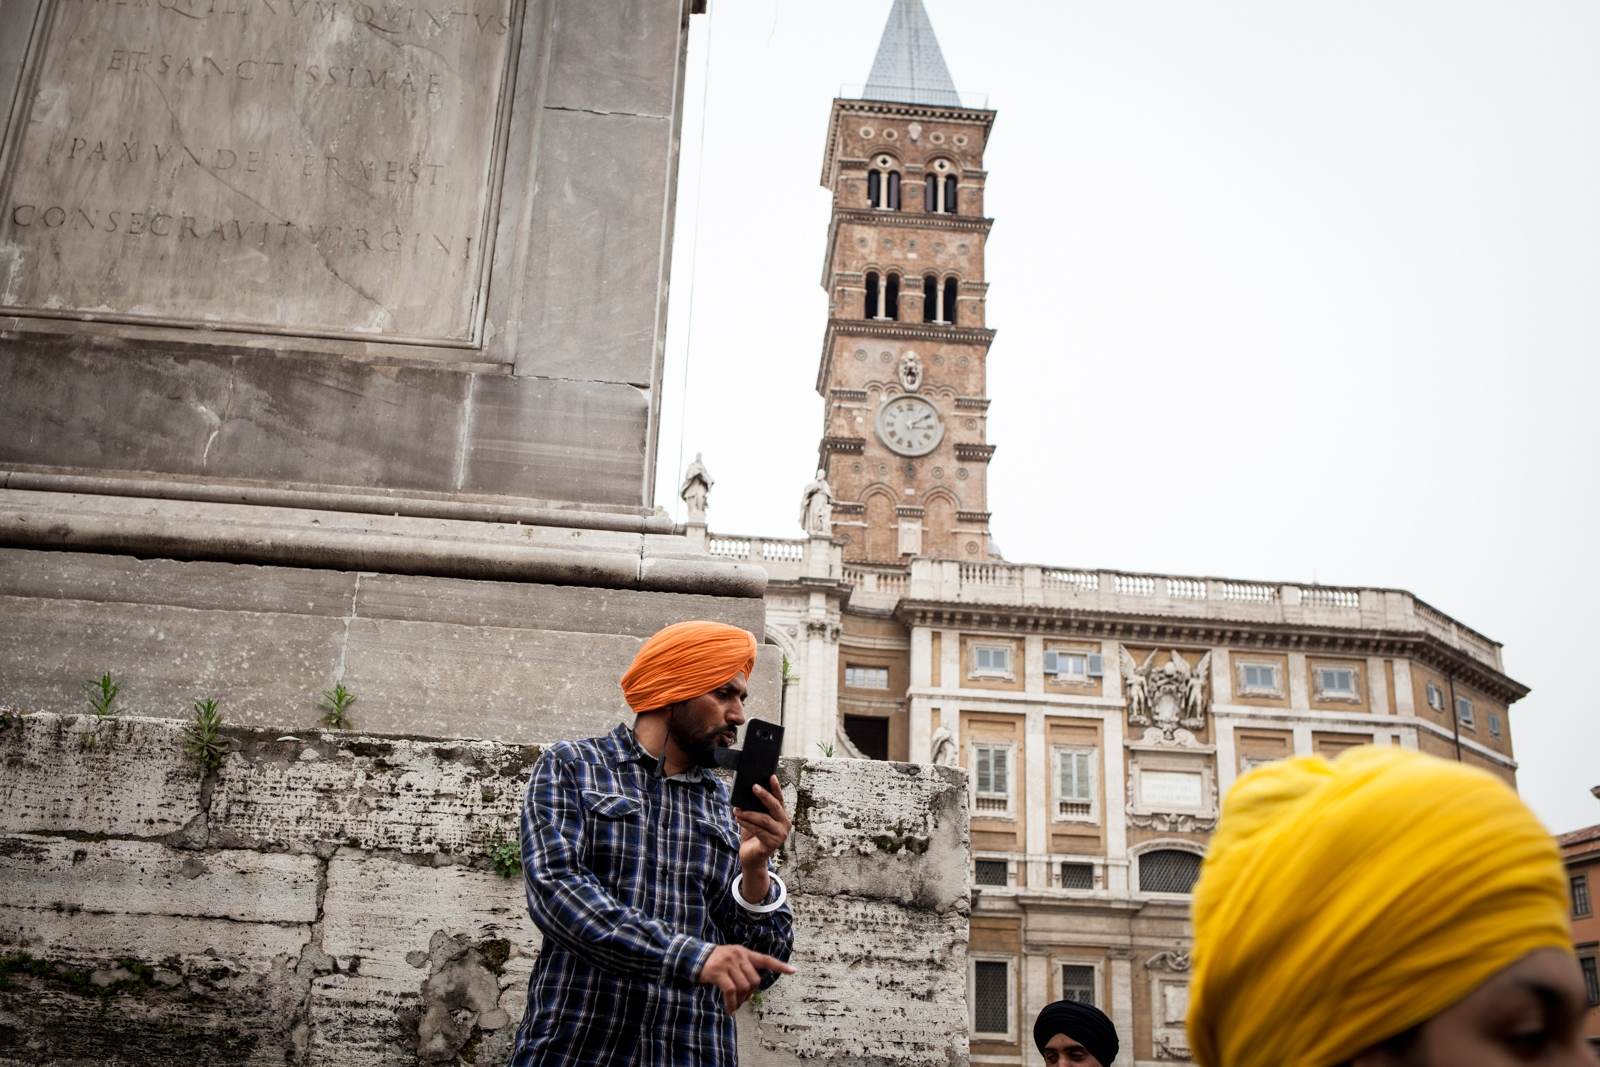 Apr. 15, 2018 - Men wait for the procession to arrive in Piazza di Santa Maria Maggiore, in the multicultural neighborhood Esquilino. Every year the area hosts the Vaisakhi Nagar Kirtan, the most important religious event for the Sikhs. Hundreds of people from all over Italy gather in the square for prayers, sacred chants  and a communal meal.